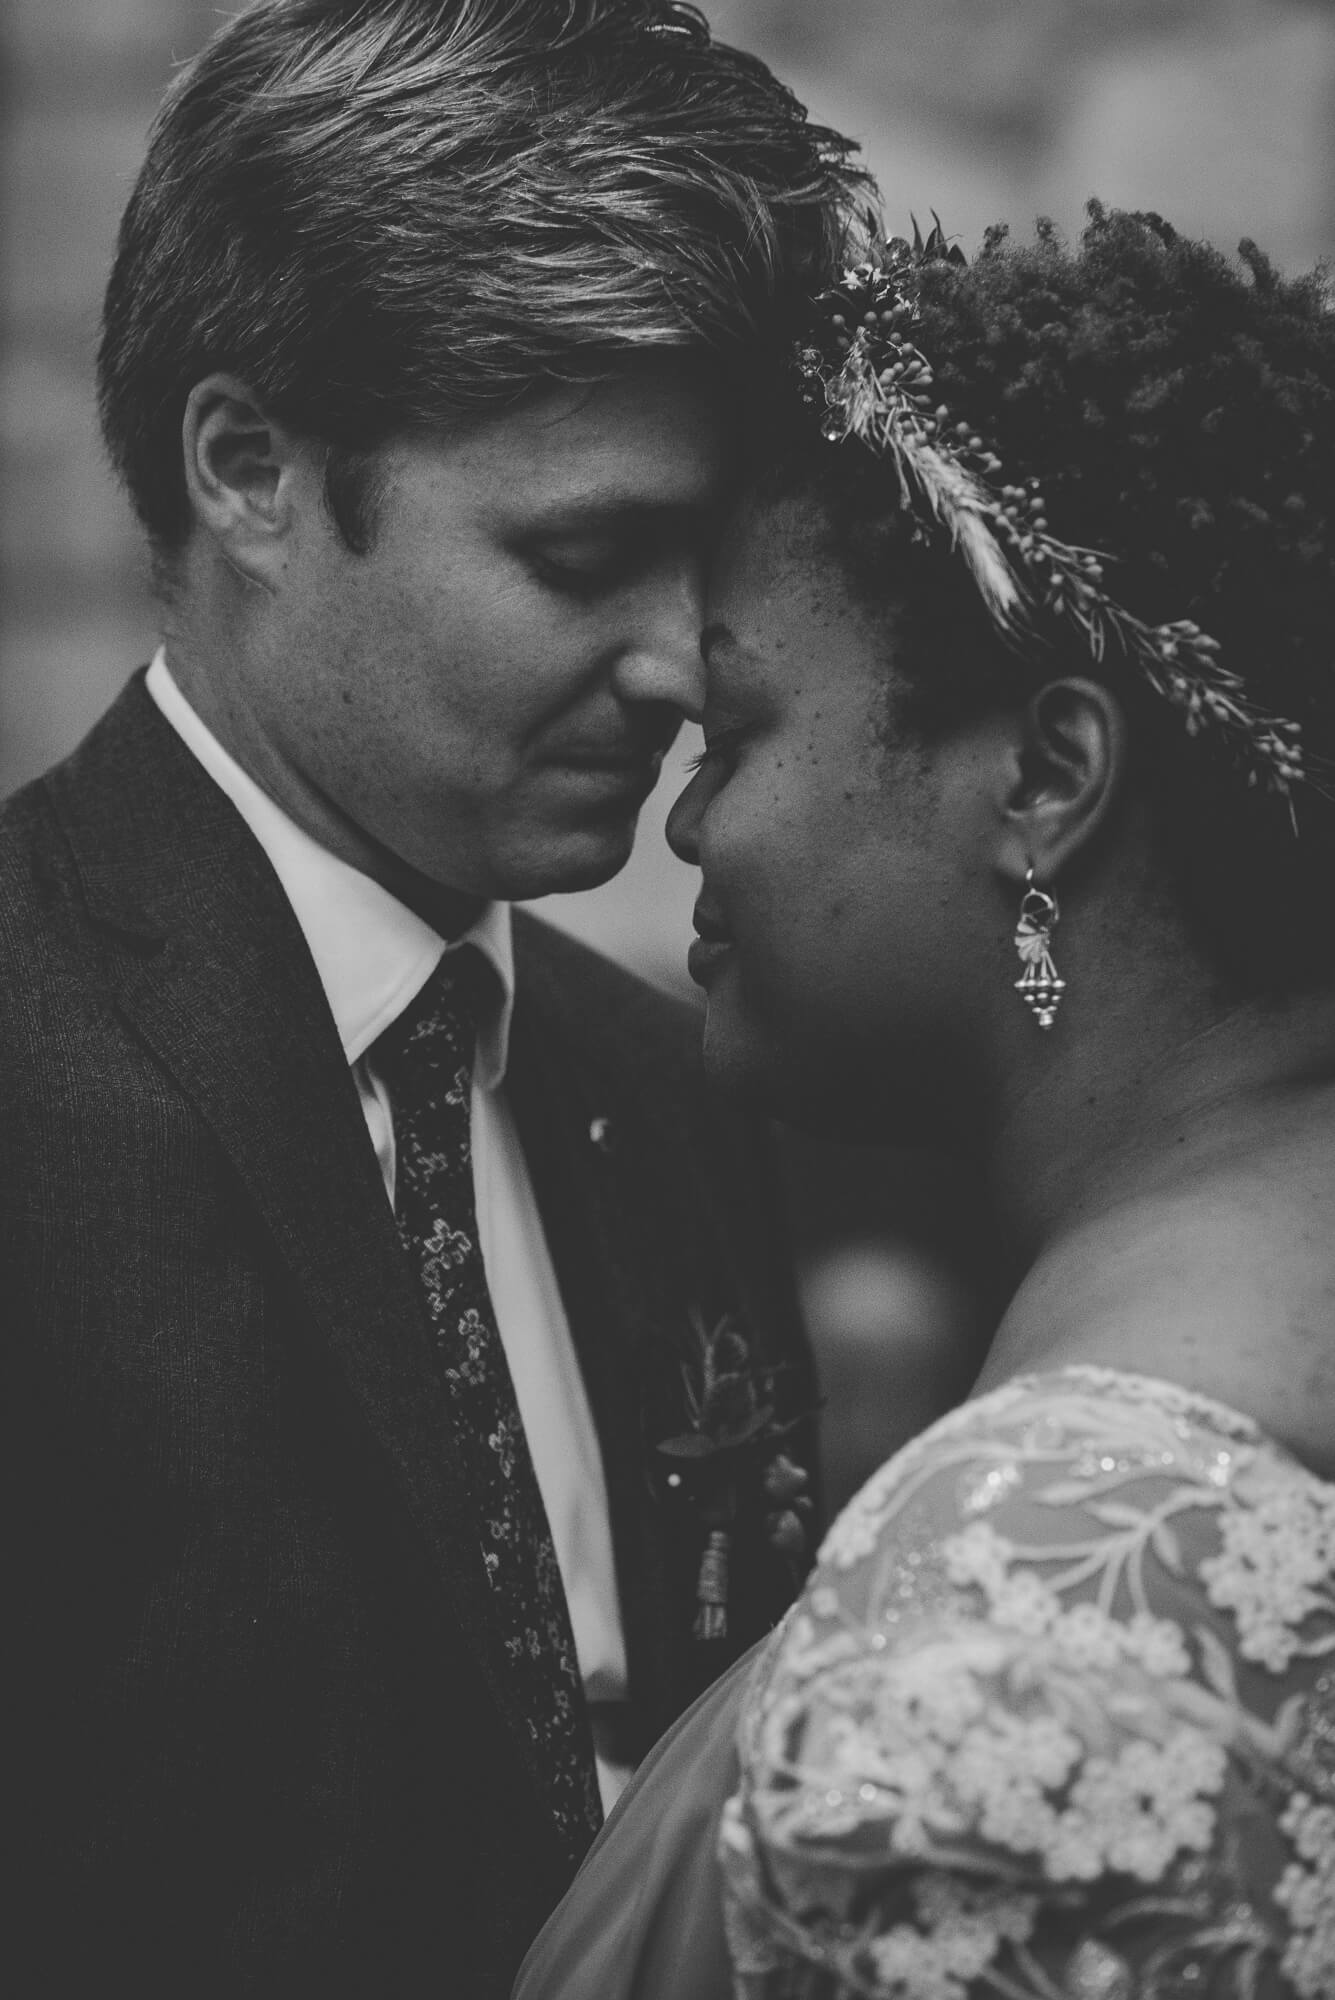 bride and groom share quiet intimate moment during first dance at wedding reception in New Westminster